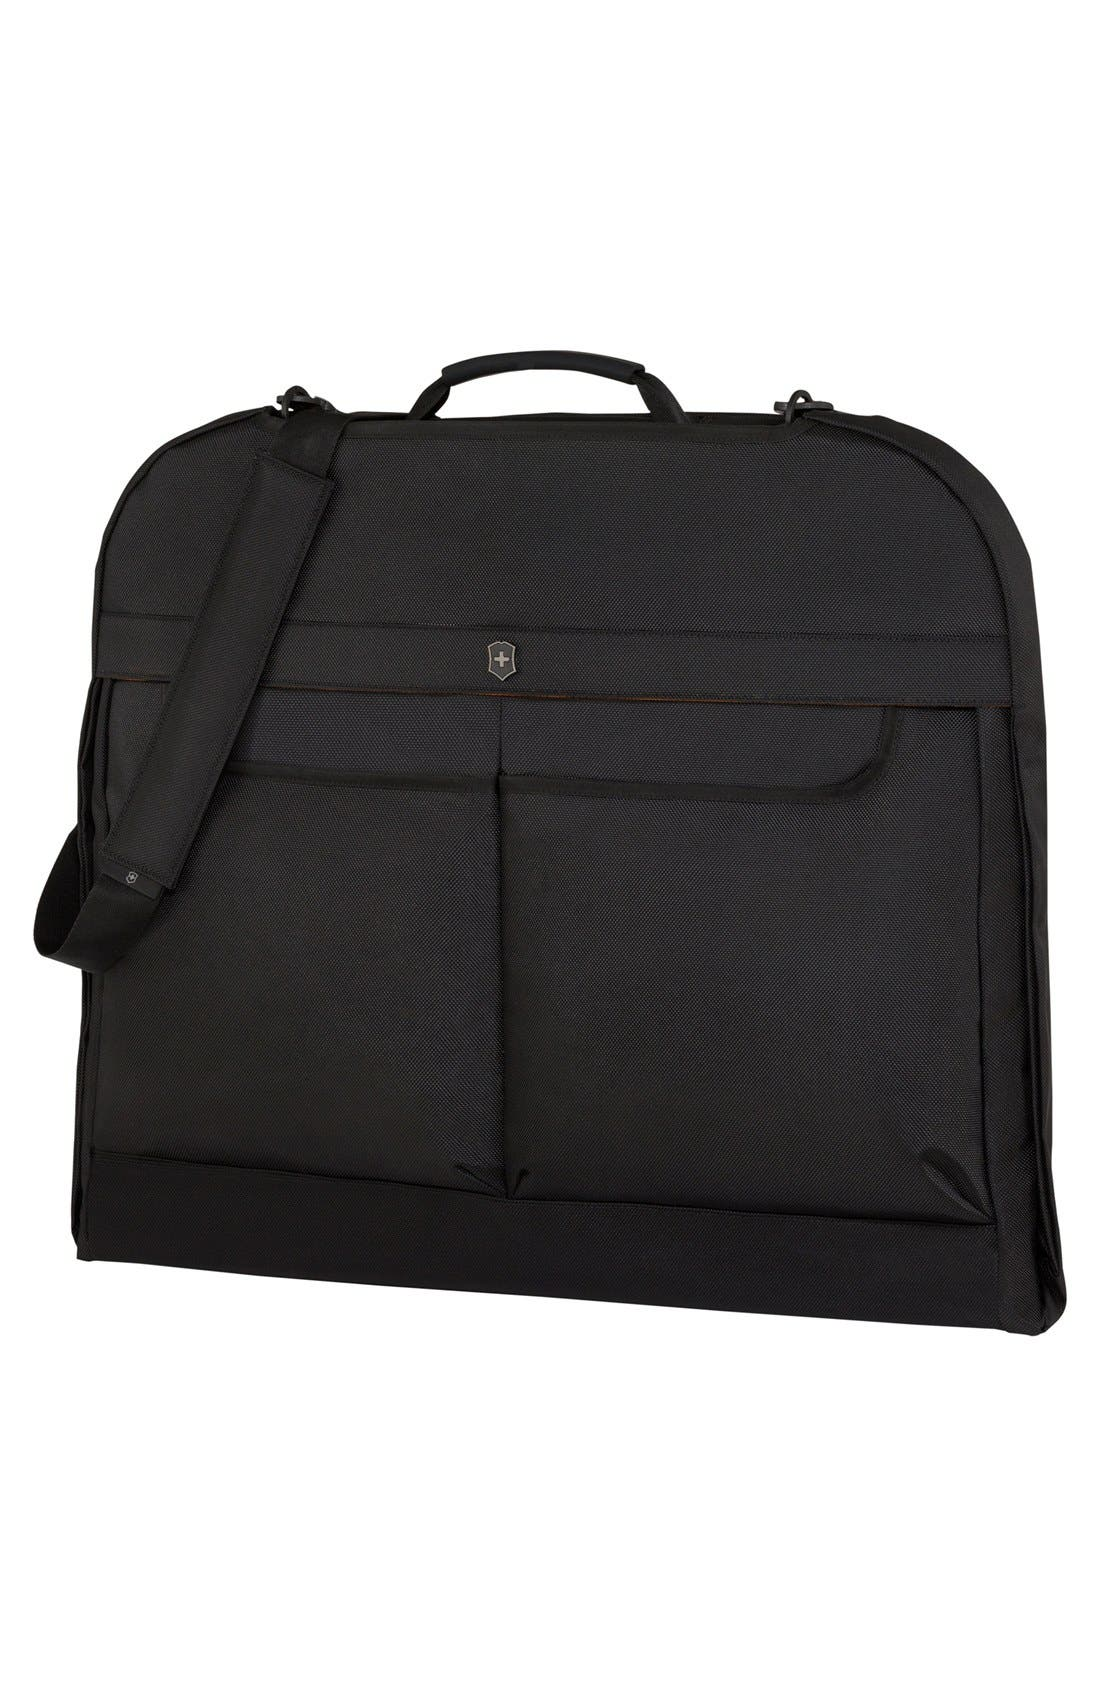 Victorinox Swiss Army® 'WT 5.0' Deluxe Garment Bag